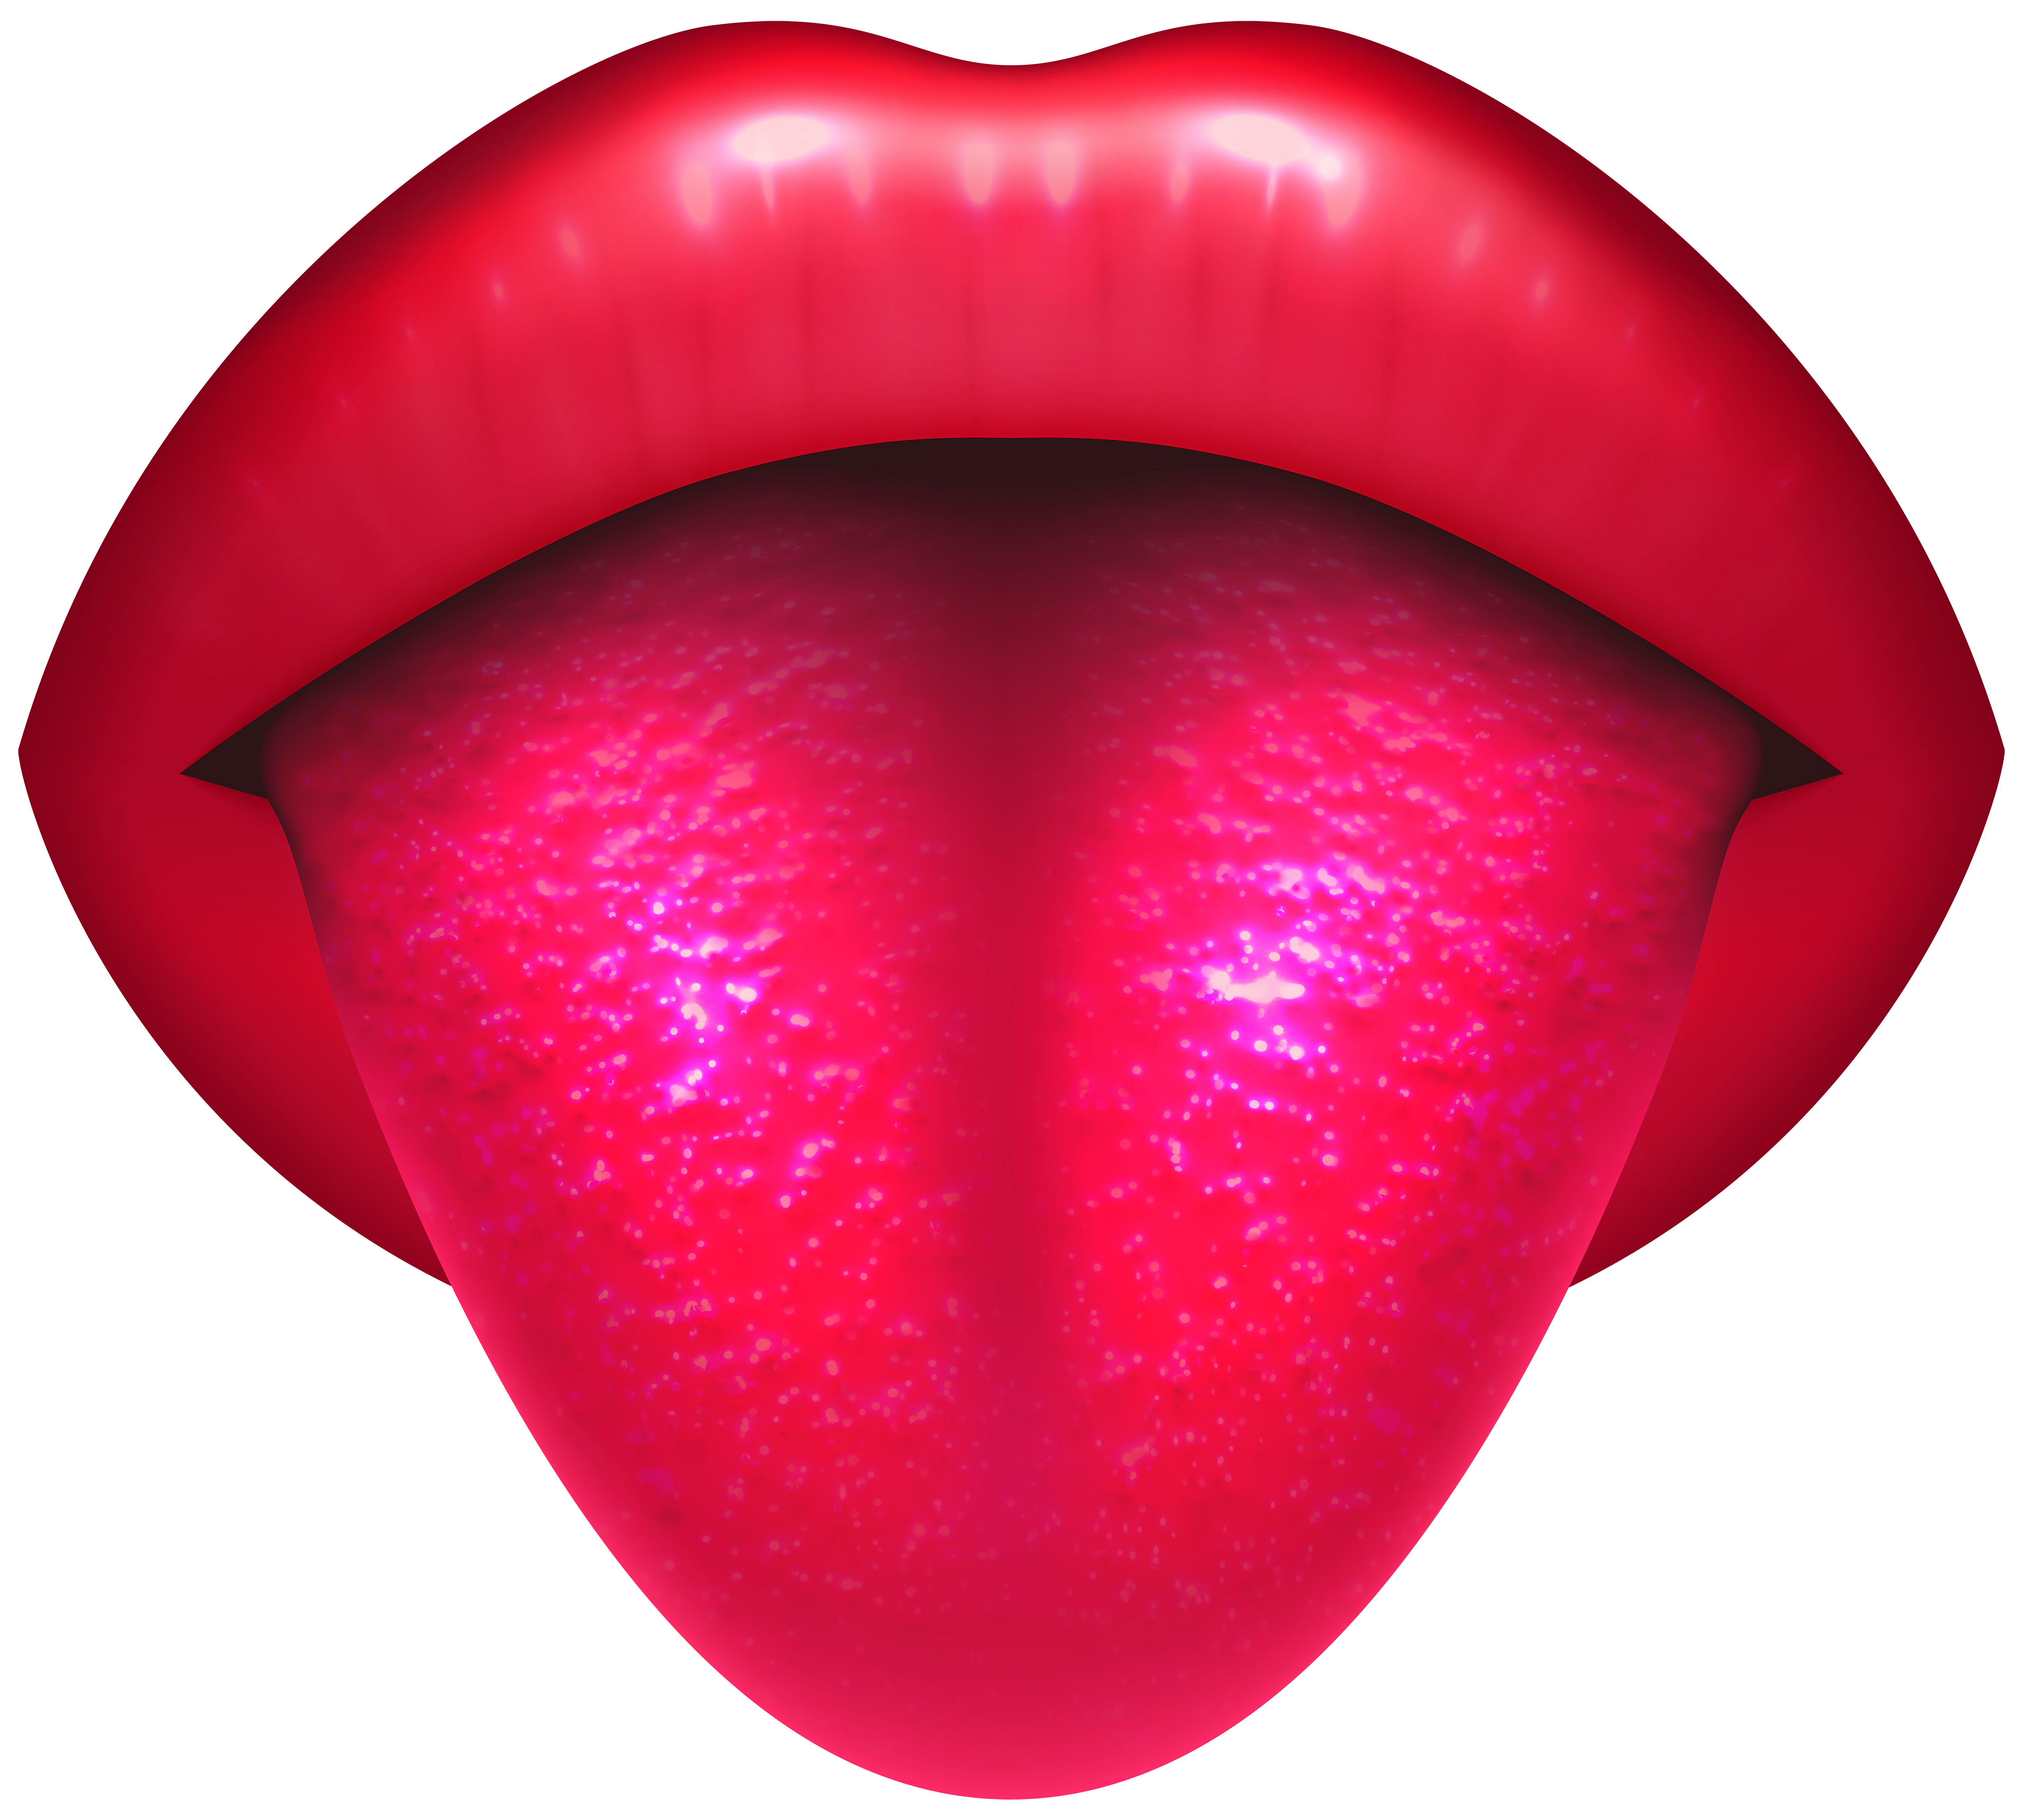 Lips and tongue clipart clipart library library Mouth with Protruding Tongue PNG Clip Art - Best WEB Clipart clipart library library